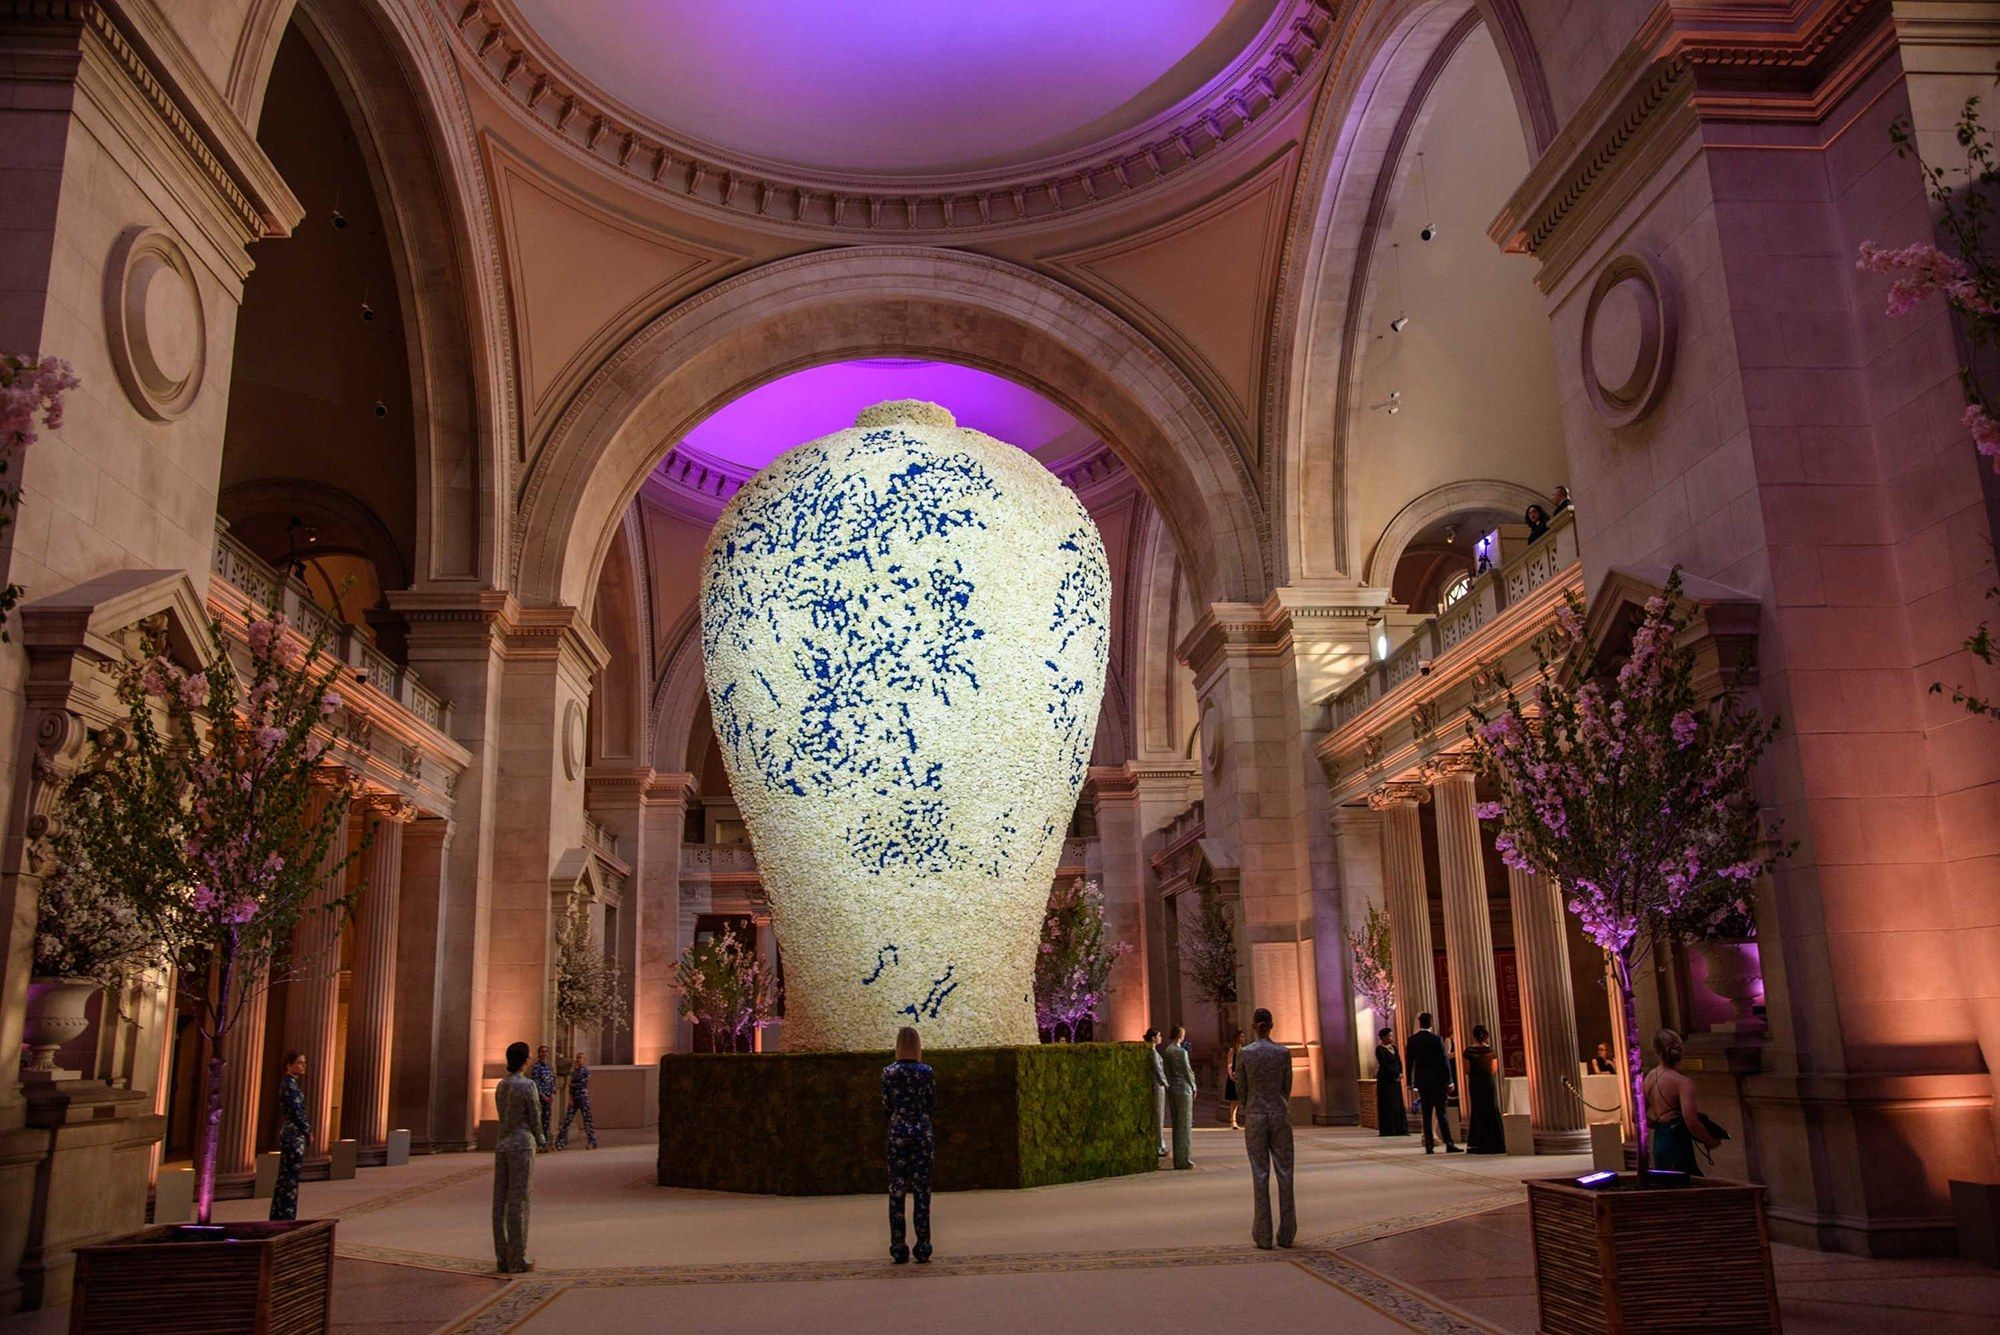 A Grand Entrance Met Gala Decor Throughout The Years Grand Entrance Gala Decorations Through The Looking Glass